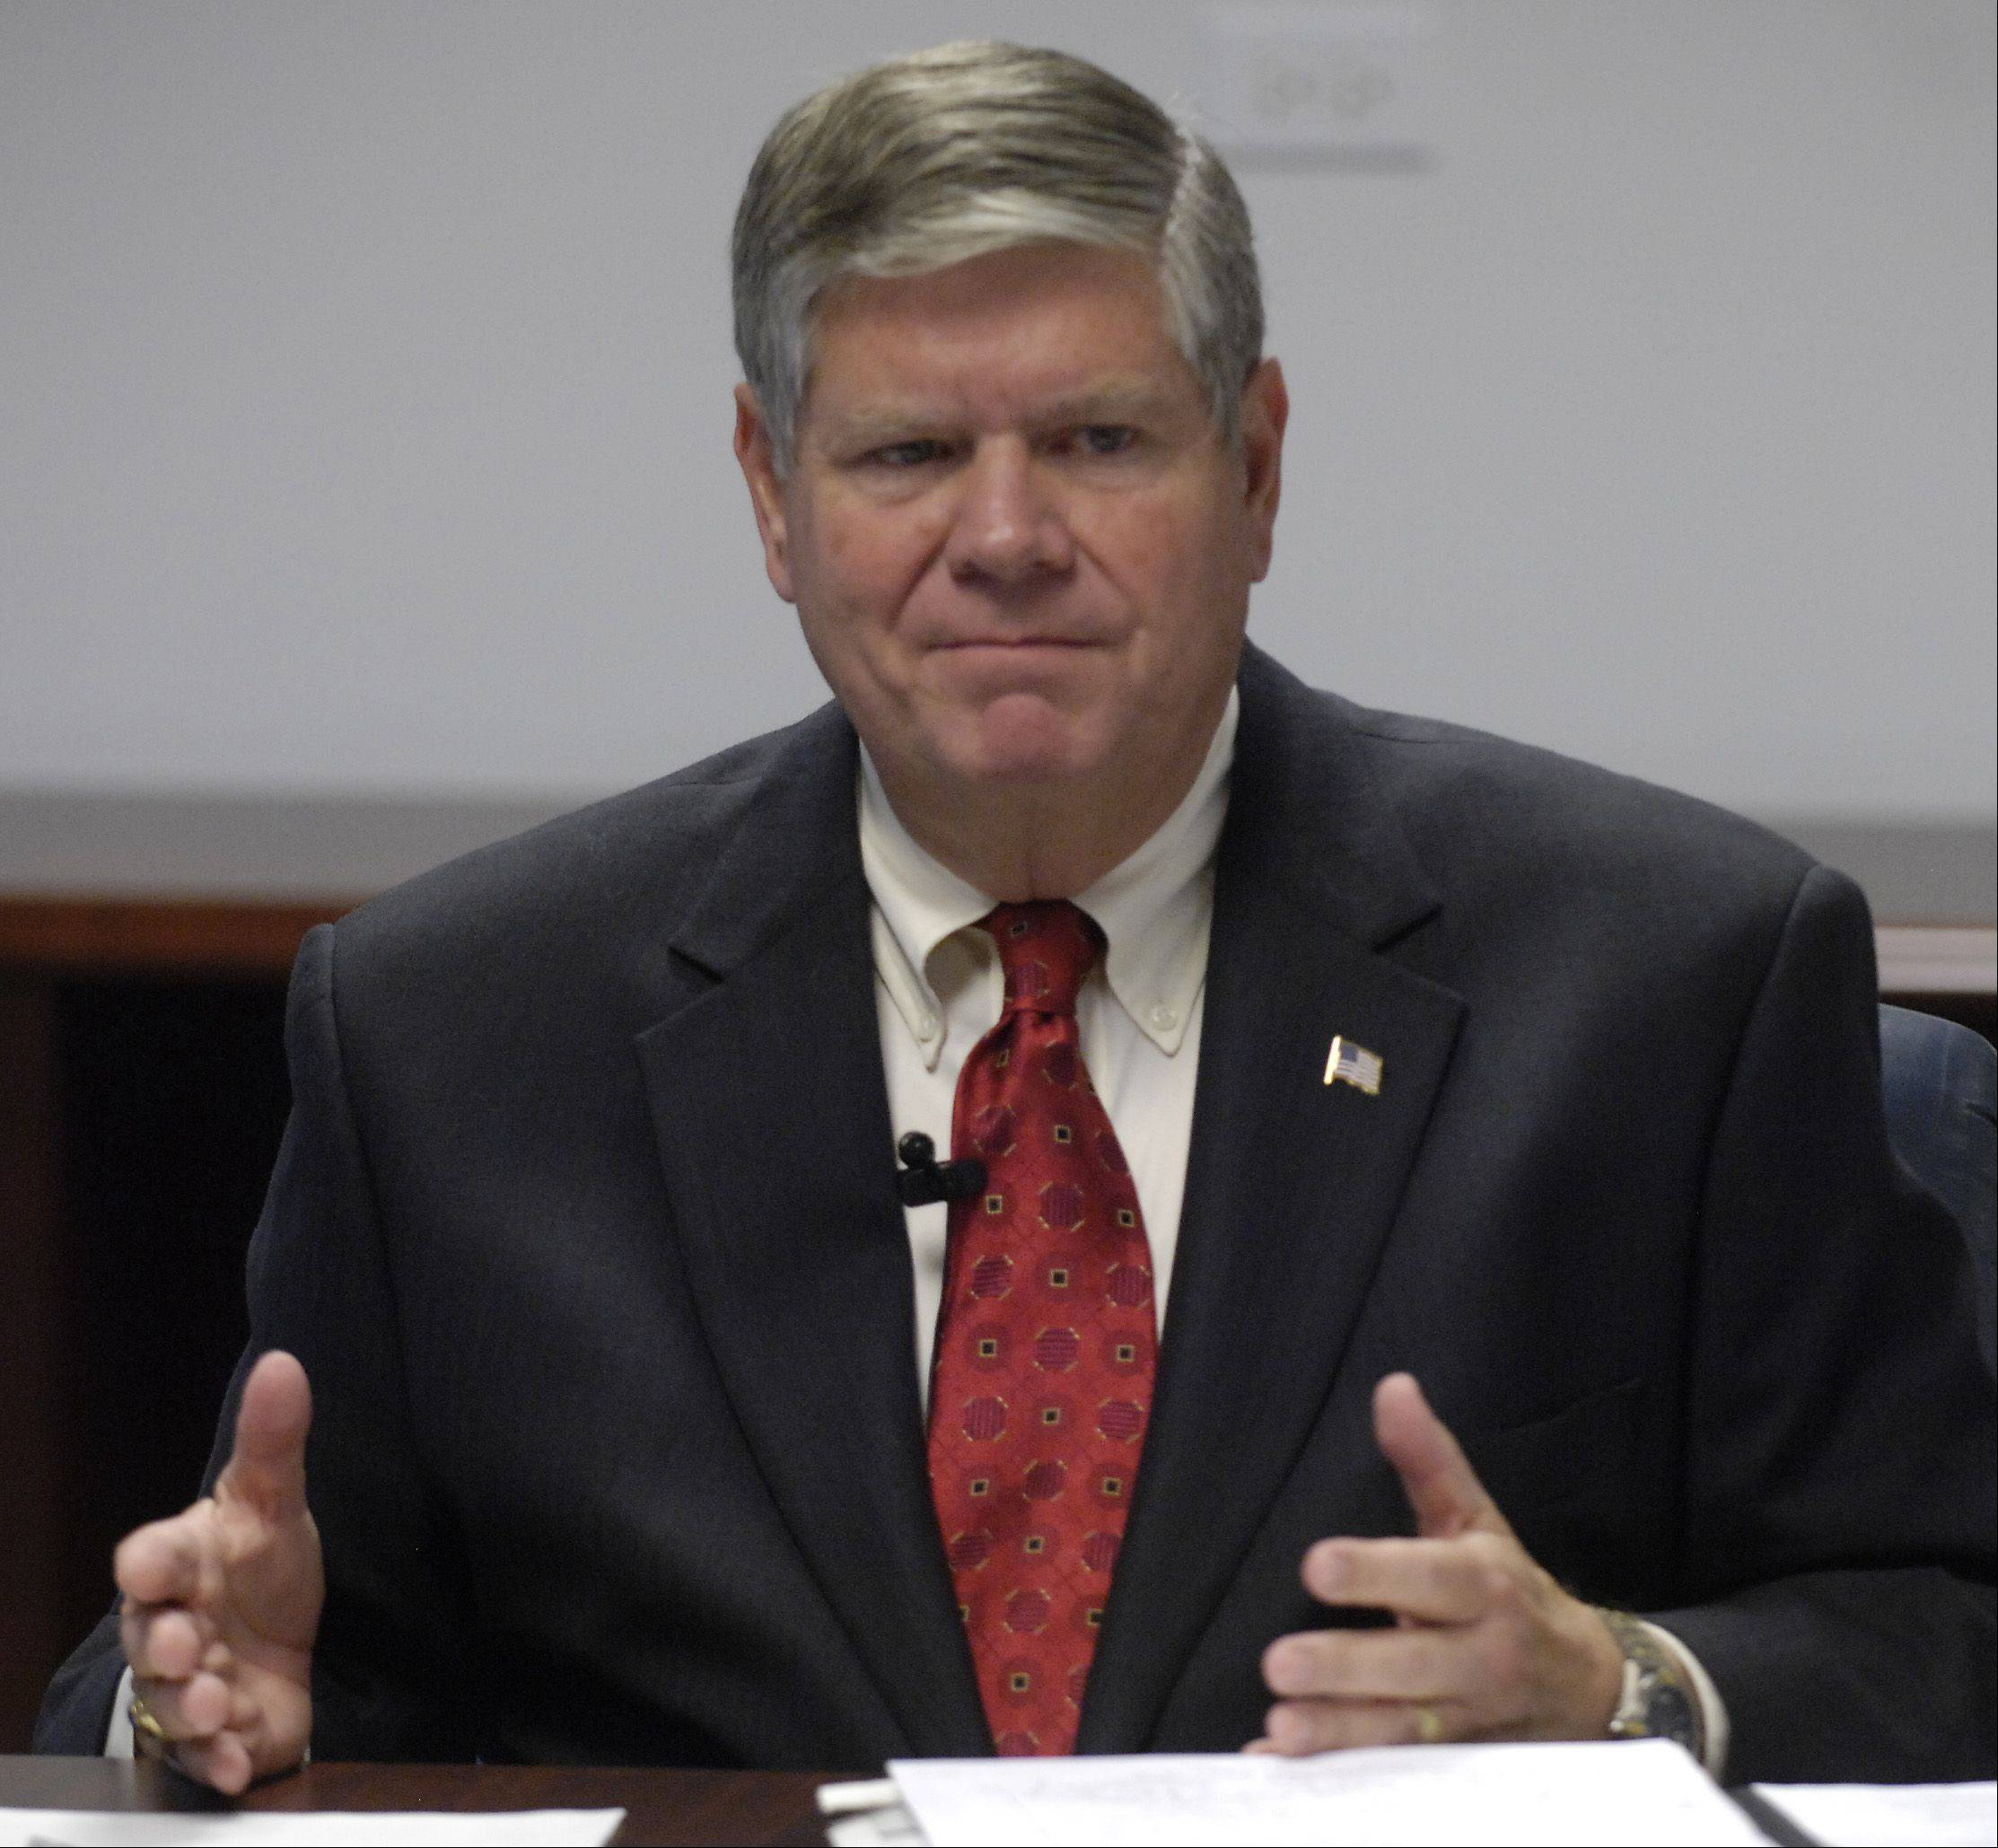 State Sen. Jim Oberweis, a Sugar Grove Republican, voted for medical marijuana.